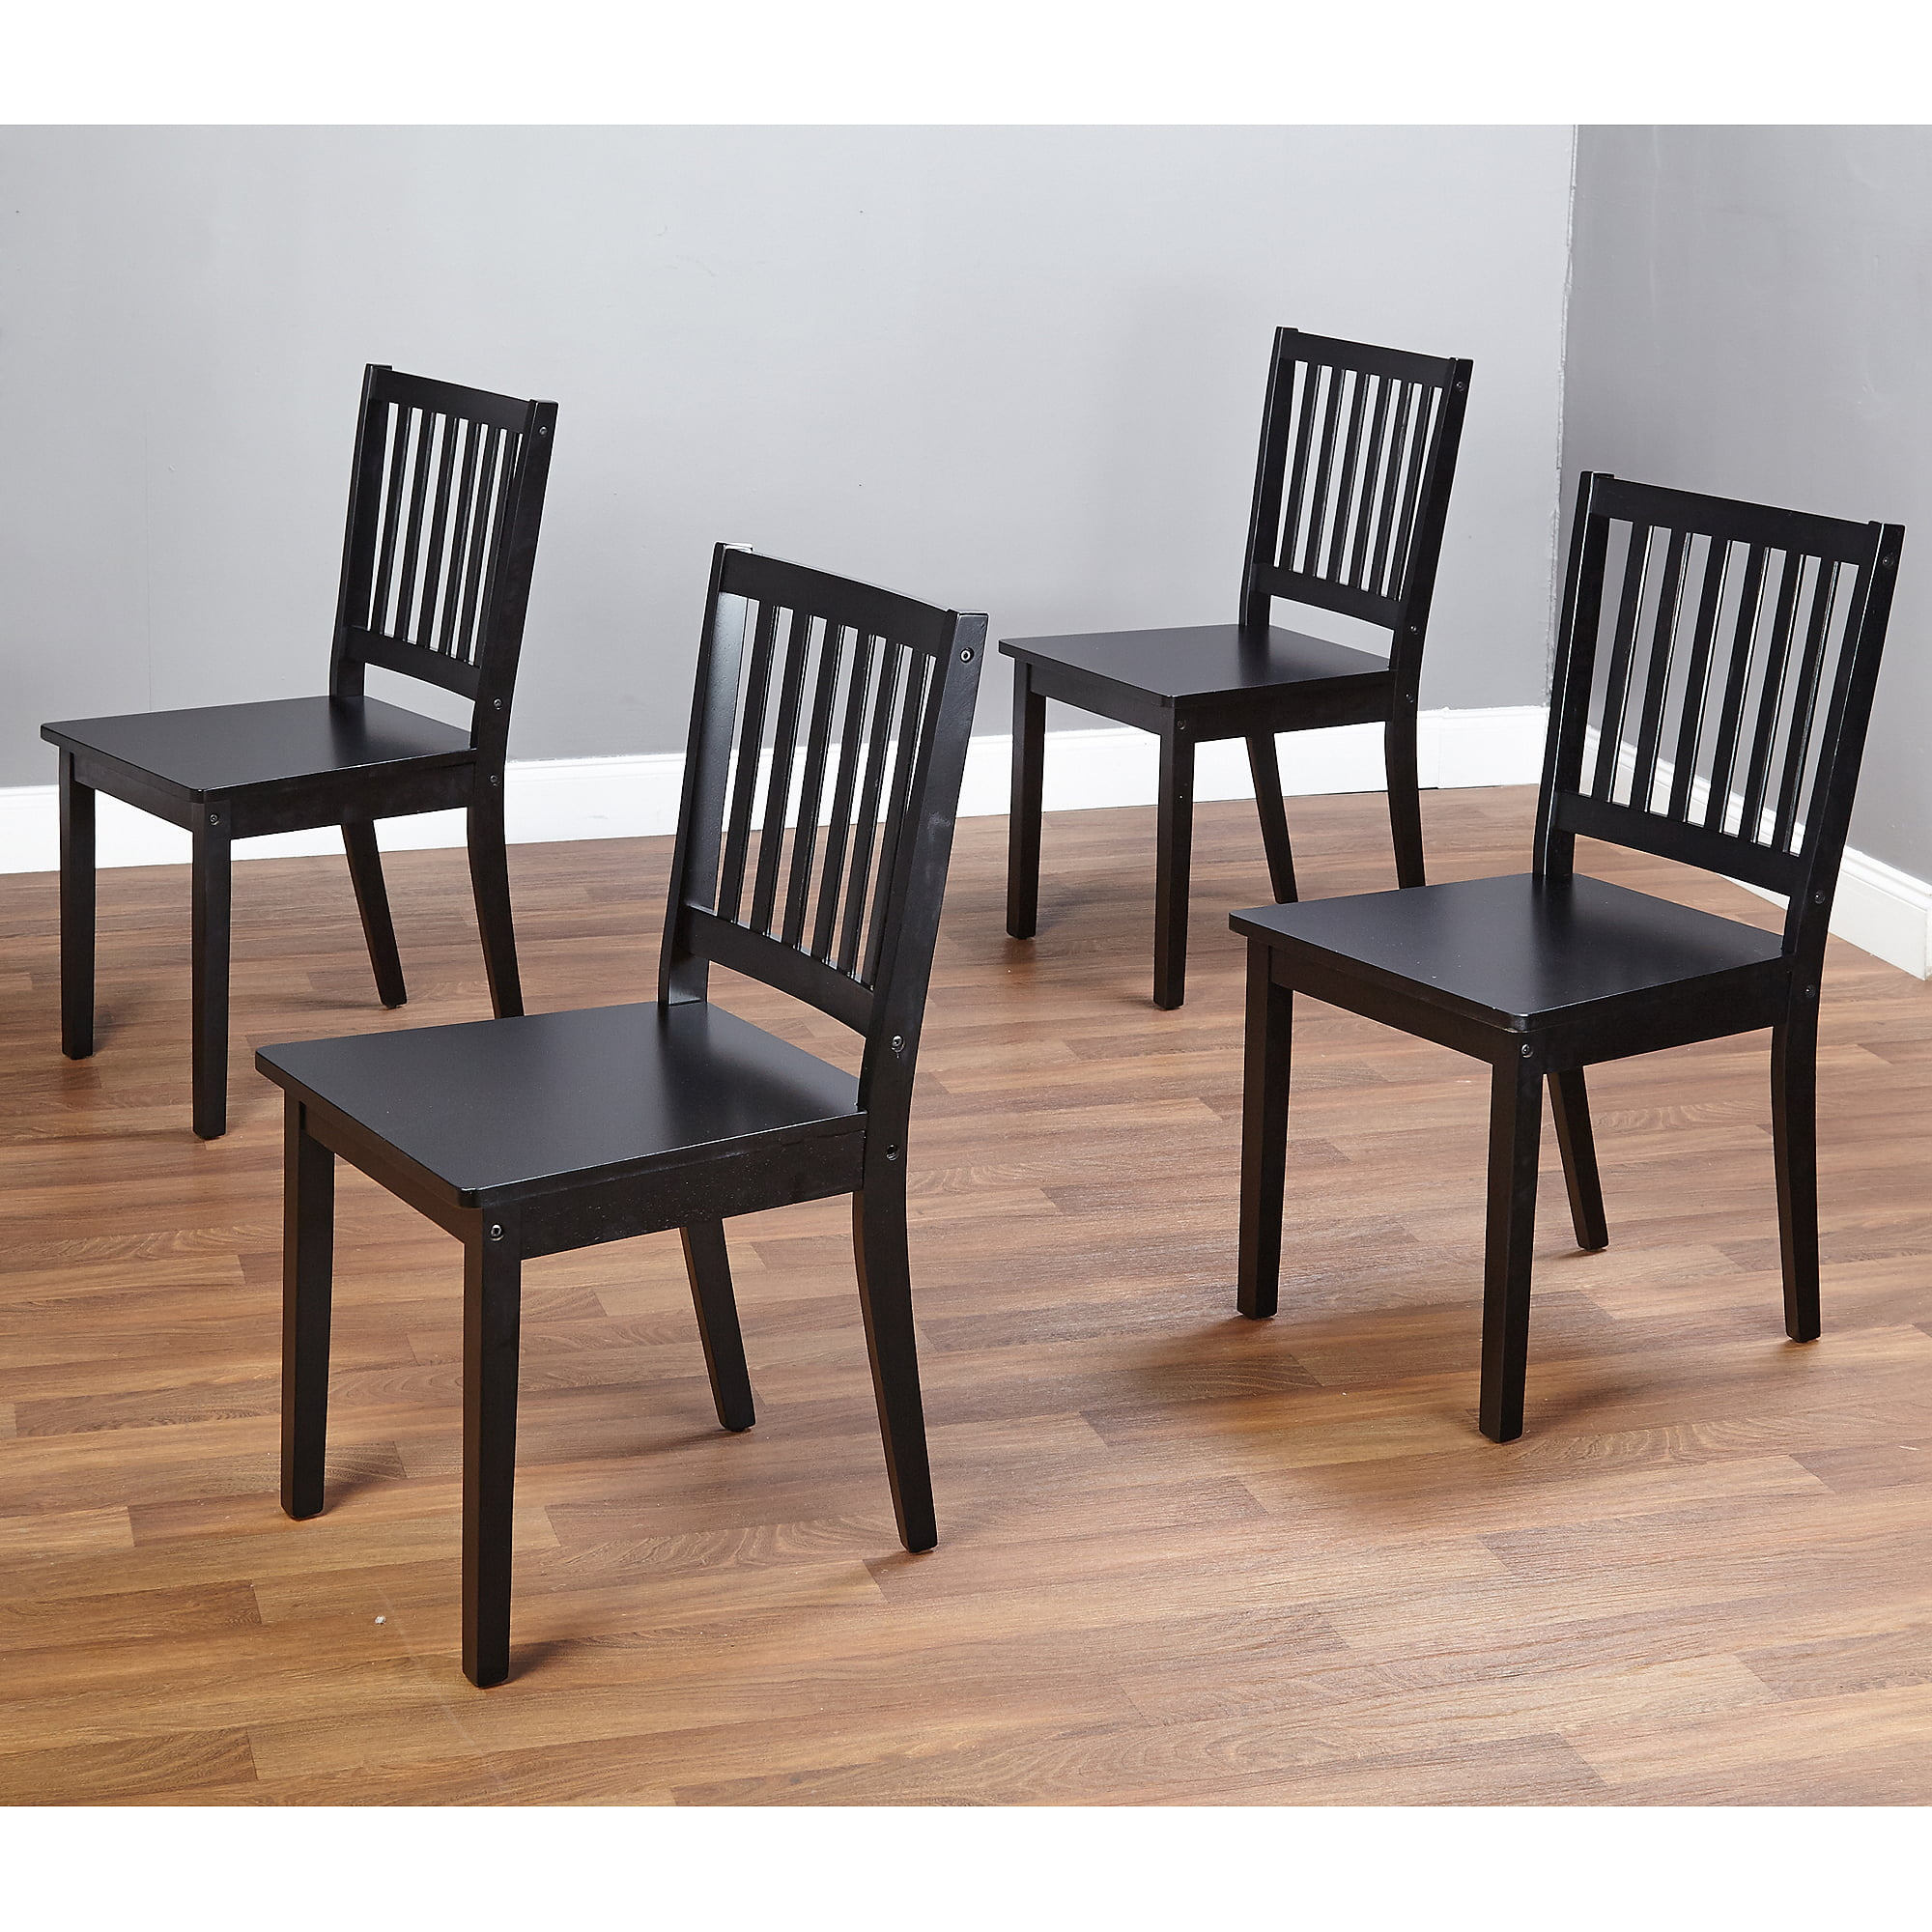 Lovely Shaker Dining Chairs, Set Of 4, Espresso   Walmart.com